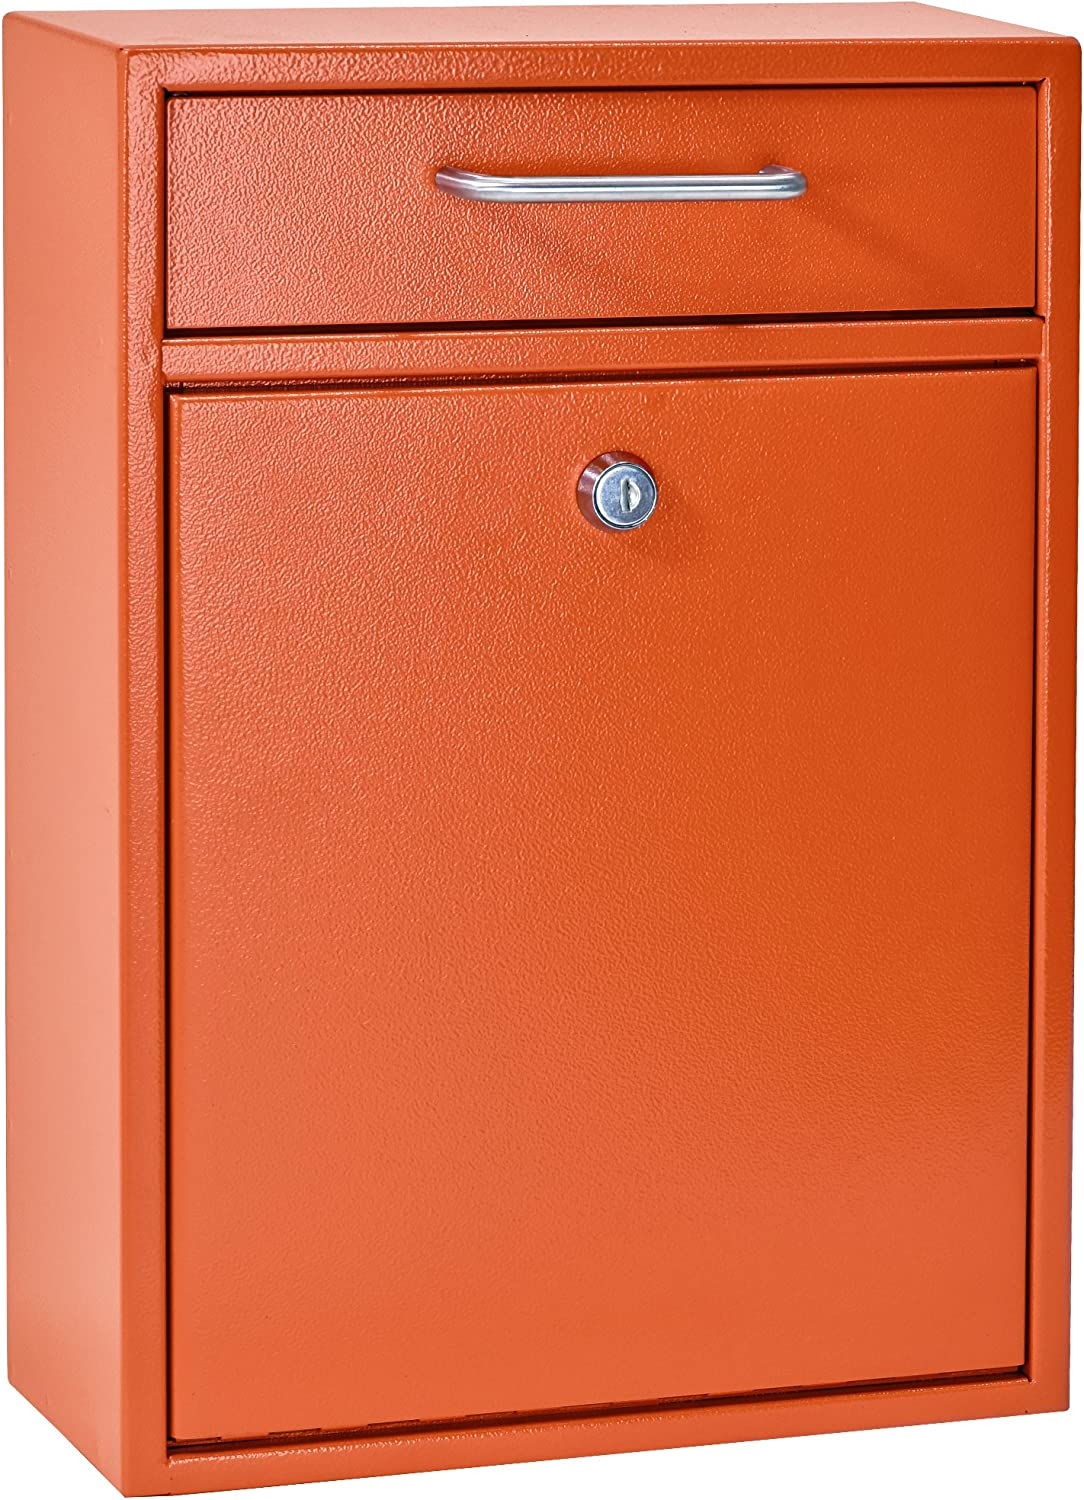 Mail Boss 7425 High Security Steel Locking Wall Mounted Mailbox Office Drop Comment Letter Deposit Box, Orange